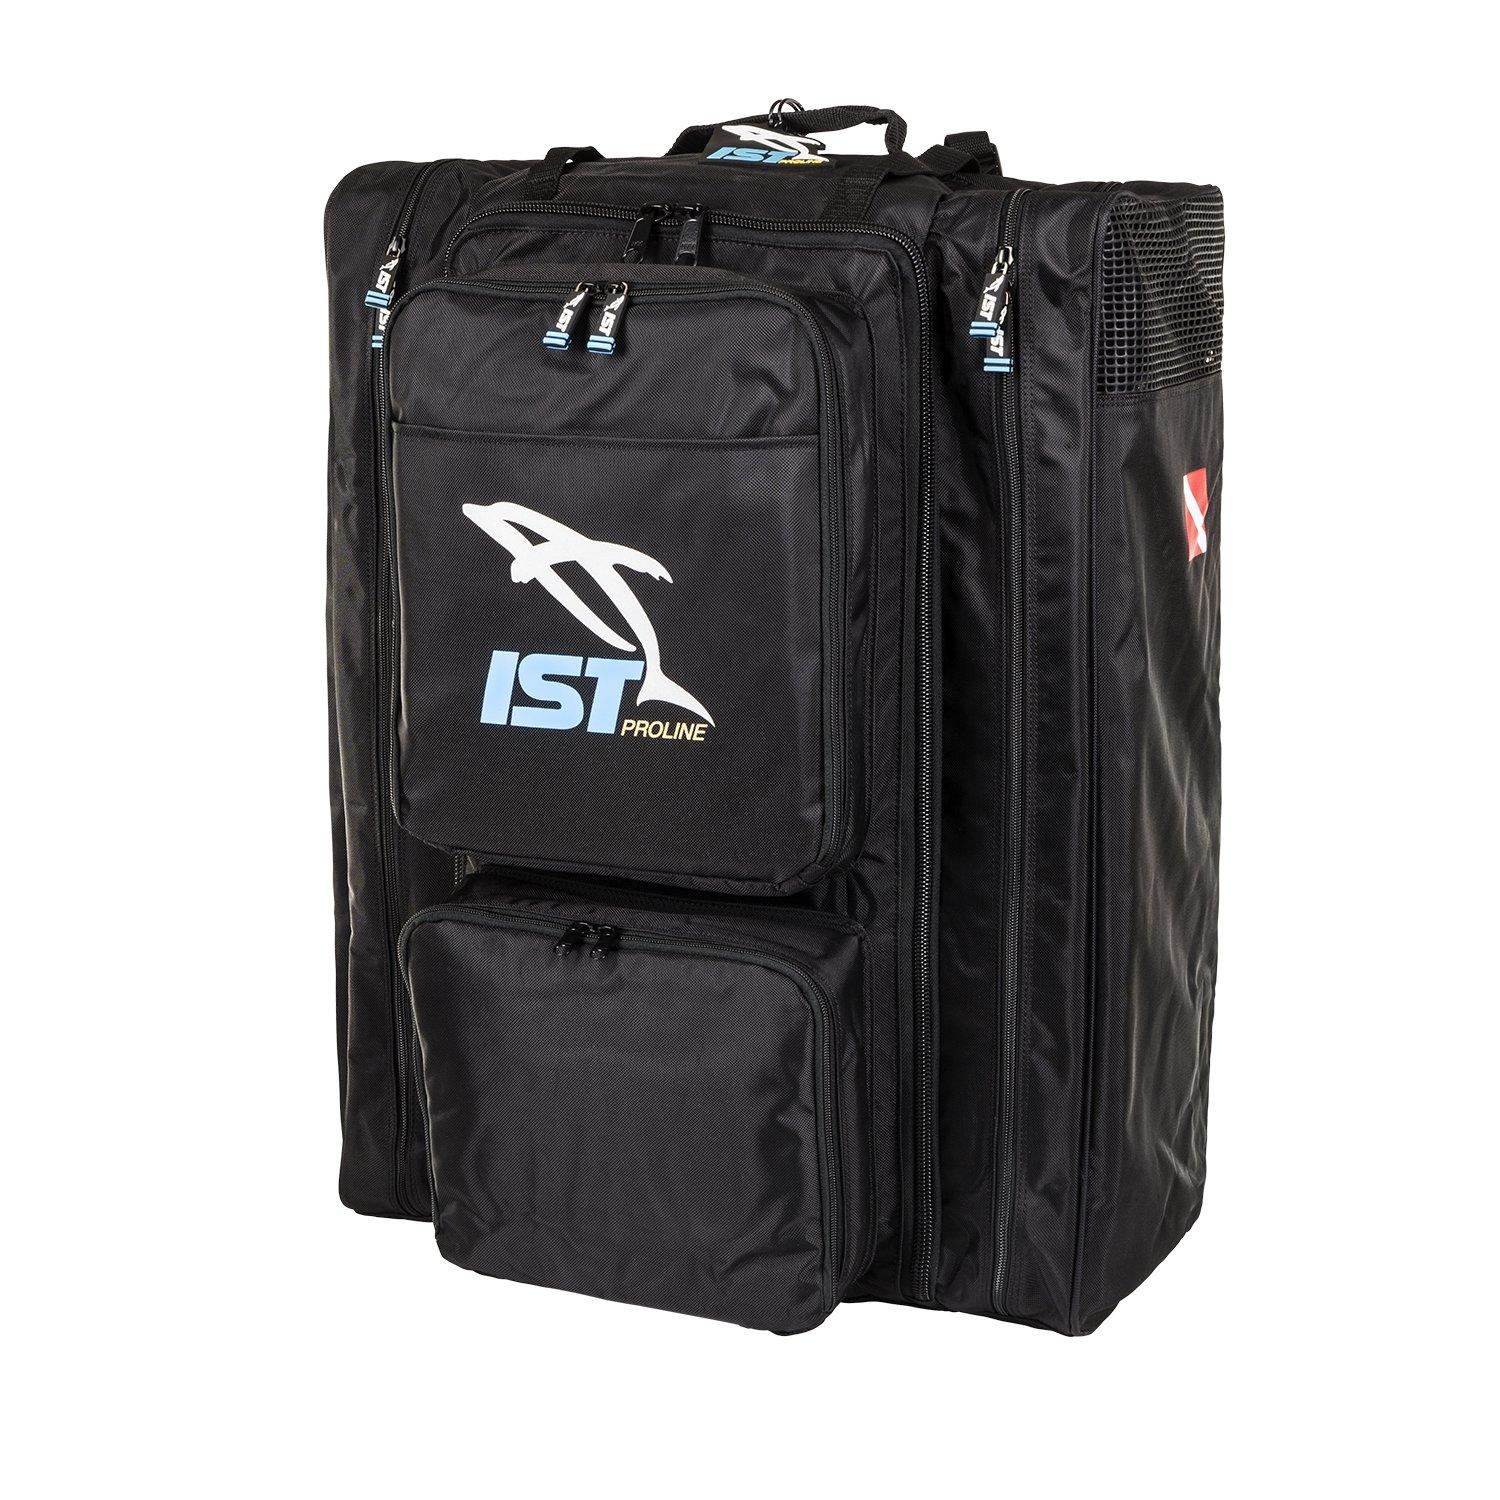 IST Heavy duty backpack - Black by IST